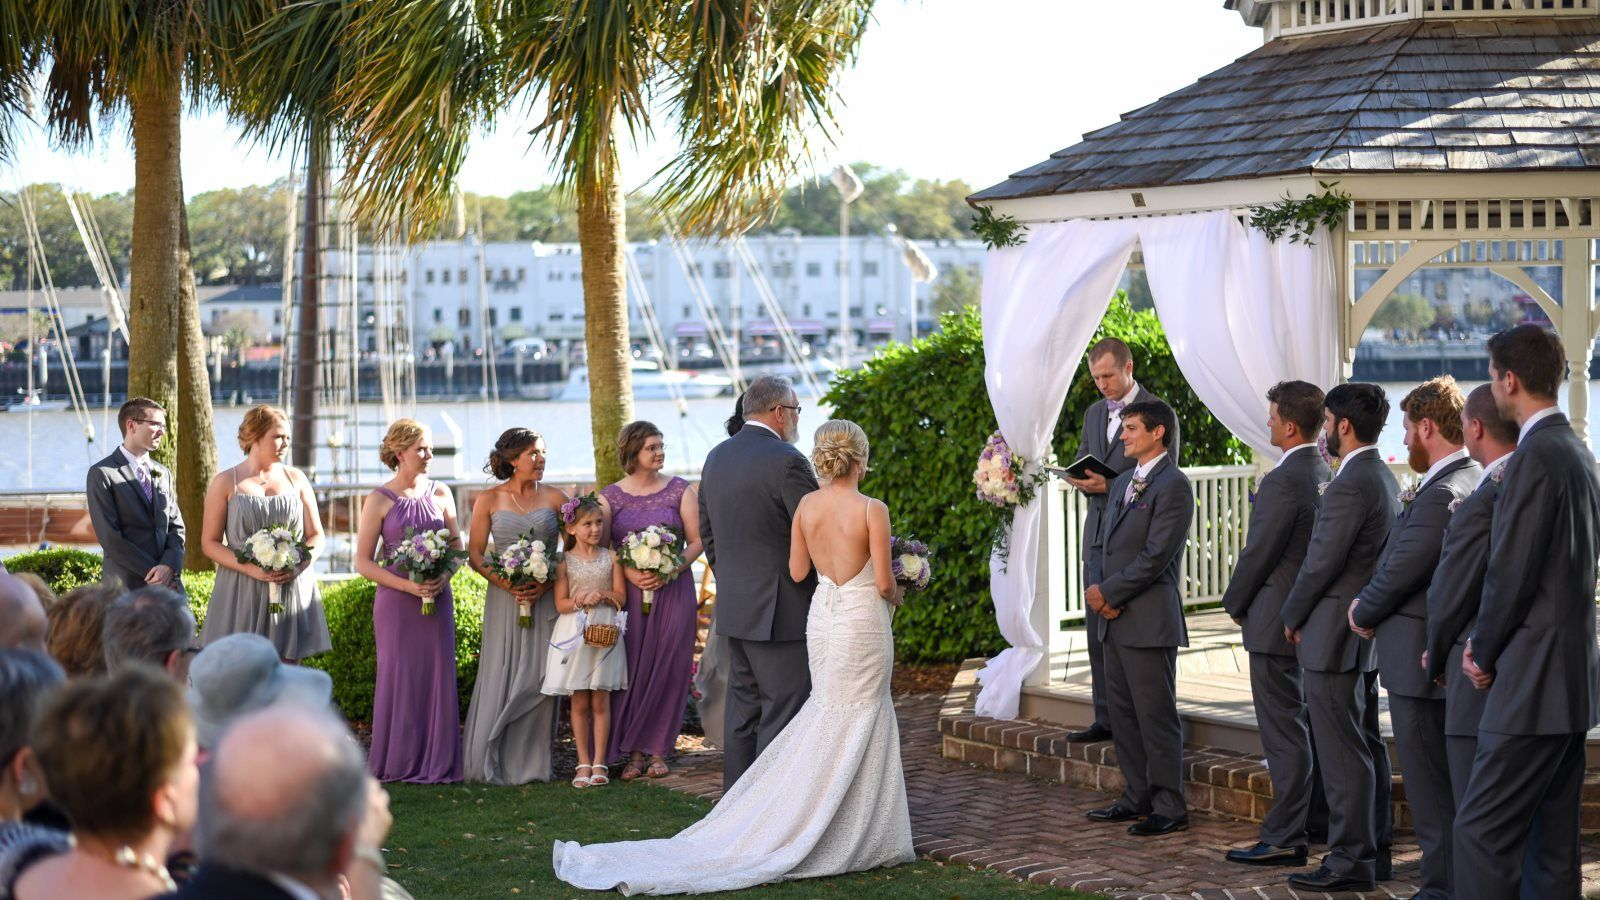 Savannah ga wedding venues the westin savannah harbor golf outdoor wedding ceremony the westin savannah harbor golf resort spa junglespirit Image collections